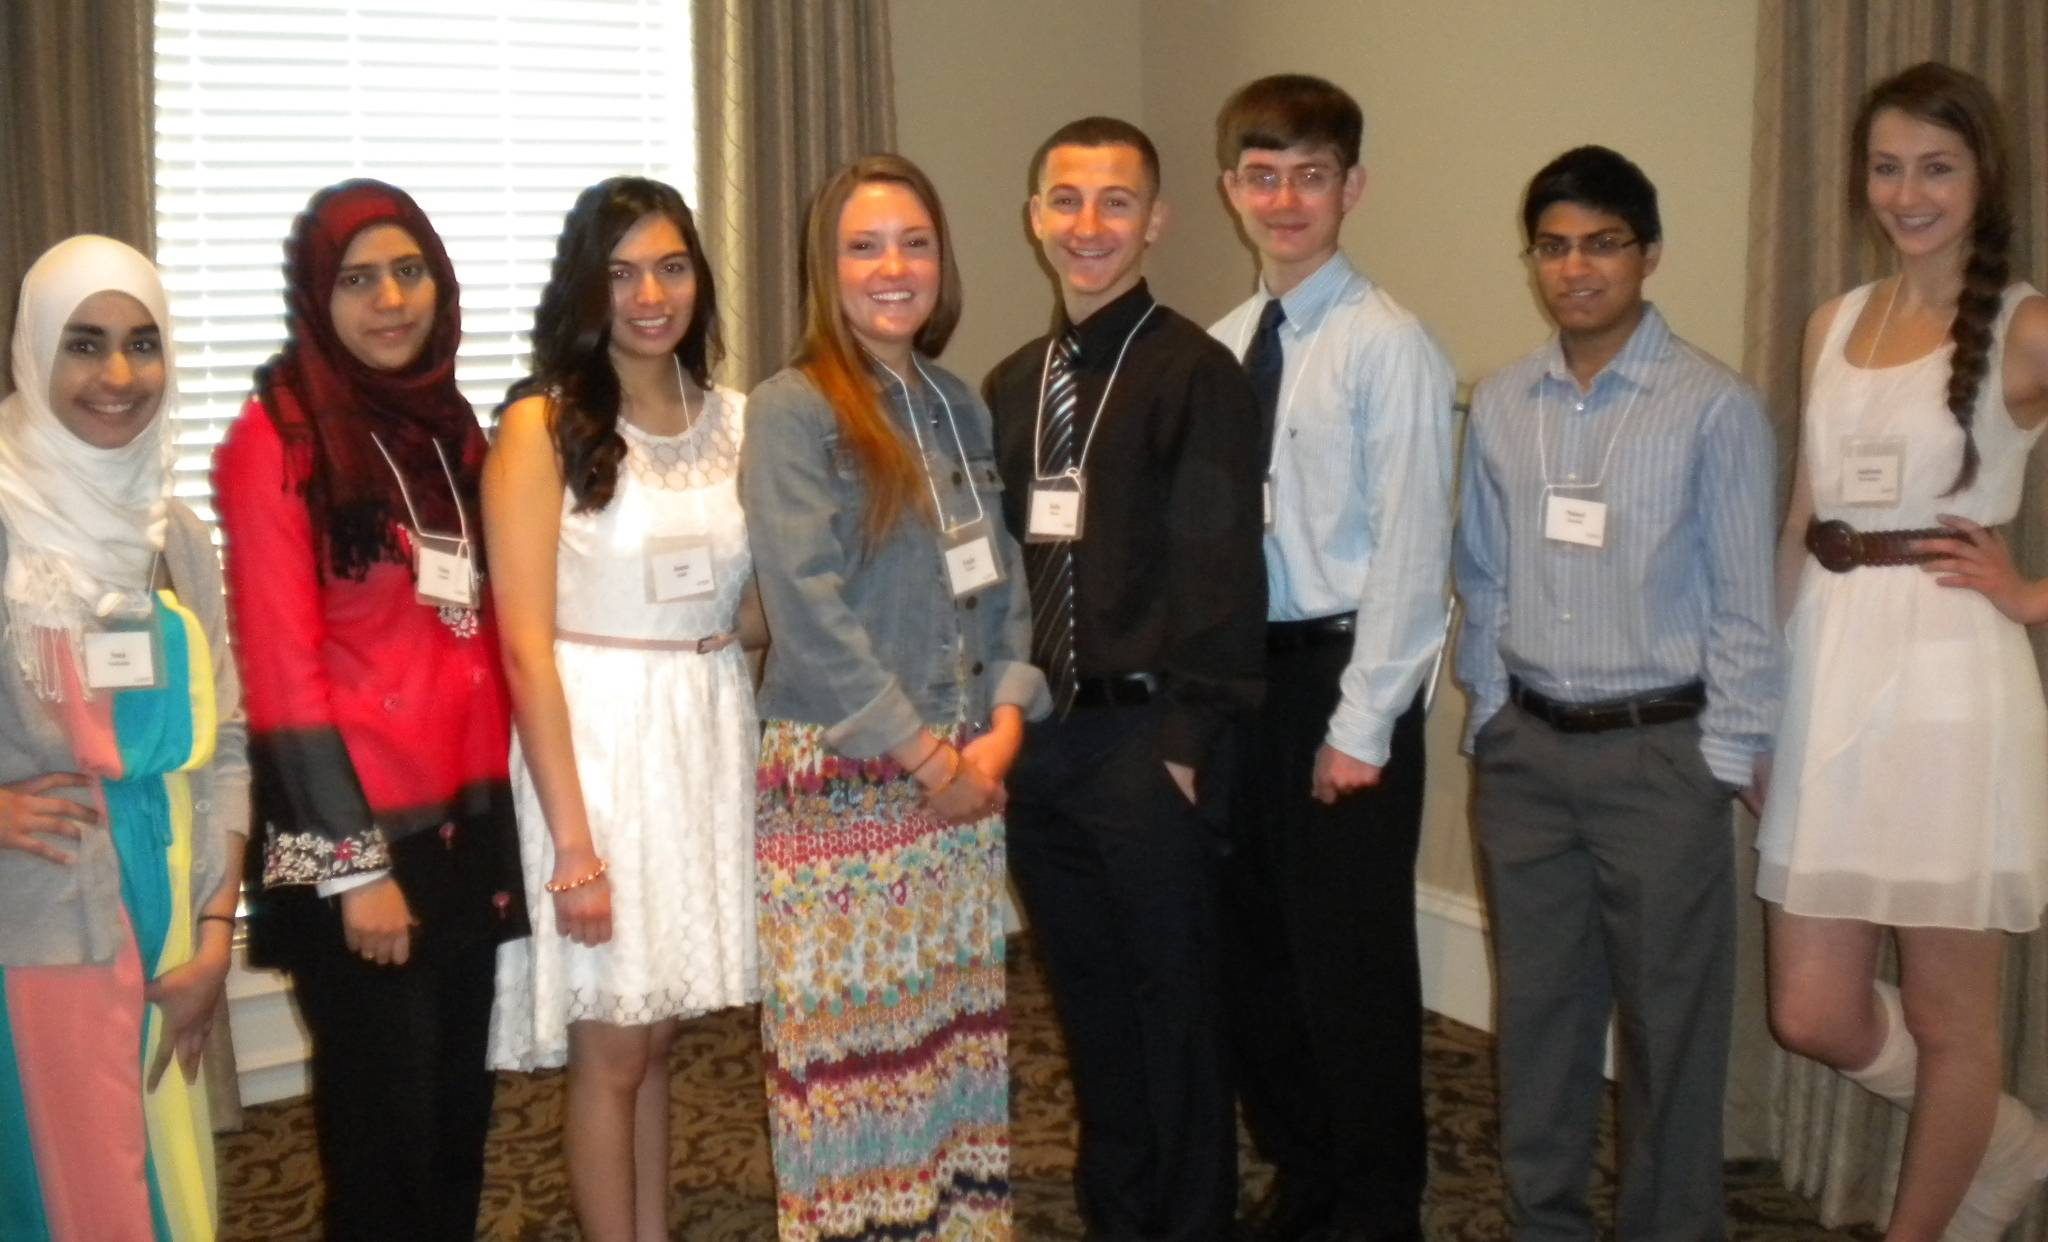 Eight of 20 scholarship winners for 2013 attend the May meeting of WCI. Pictured, from left, are Sana Shafiuddin, Sana Quadri, Joana Quillo, Emily Manley, Flavio Kola, Michael Anderson, Nabeel Qureshi and Andriana Krivonosov.